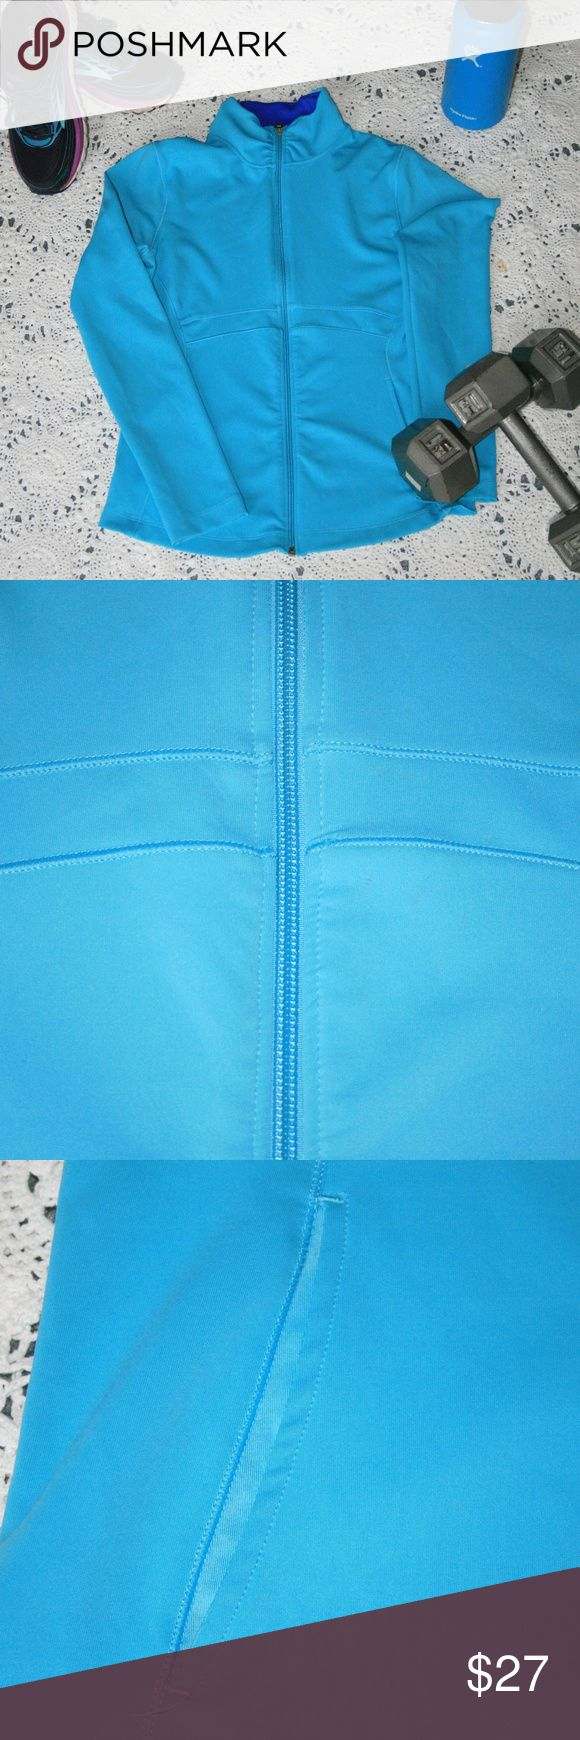 New Balance Sports Jacket Light blue spandex lightning dry jacket. Holds warmth really well when working out, but also great for exercising and keeping you cool because of air flow. Zips all the way up to the neck. Tiny smudge on jacket front (pictured) but nearly invisible. New Balance Jackets & Coats